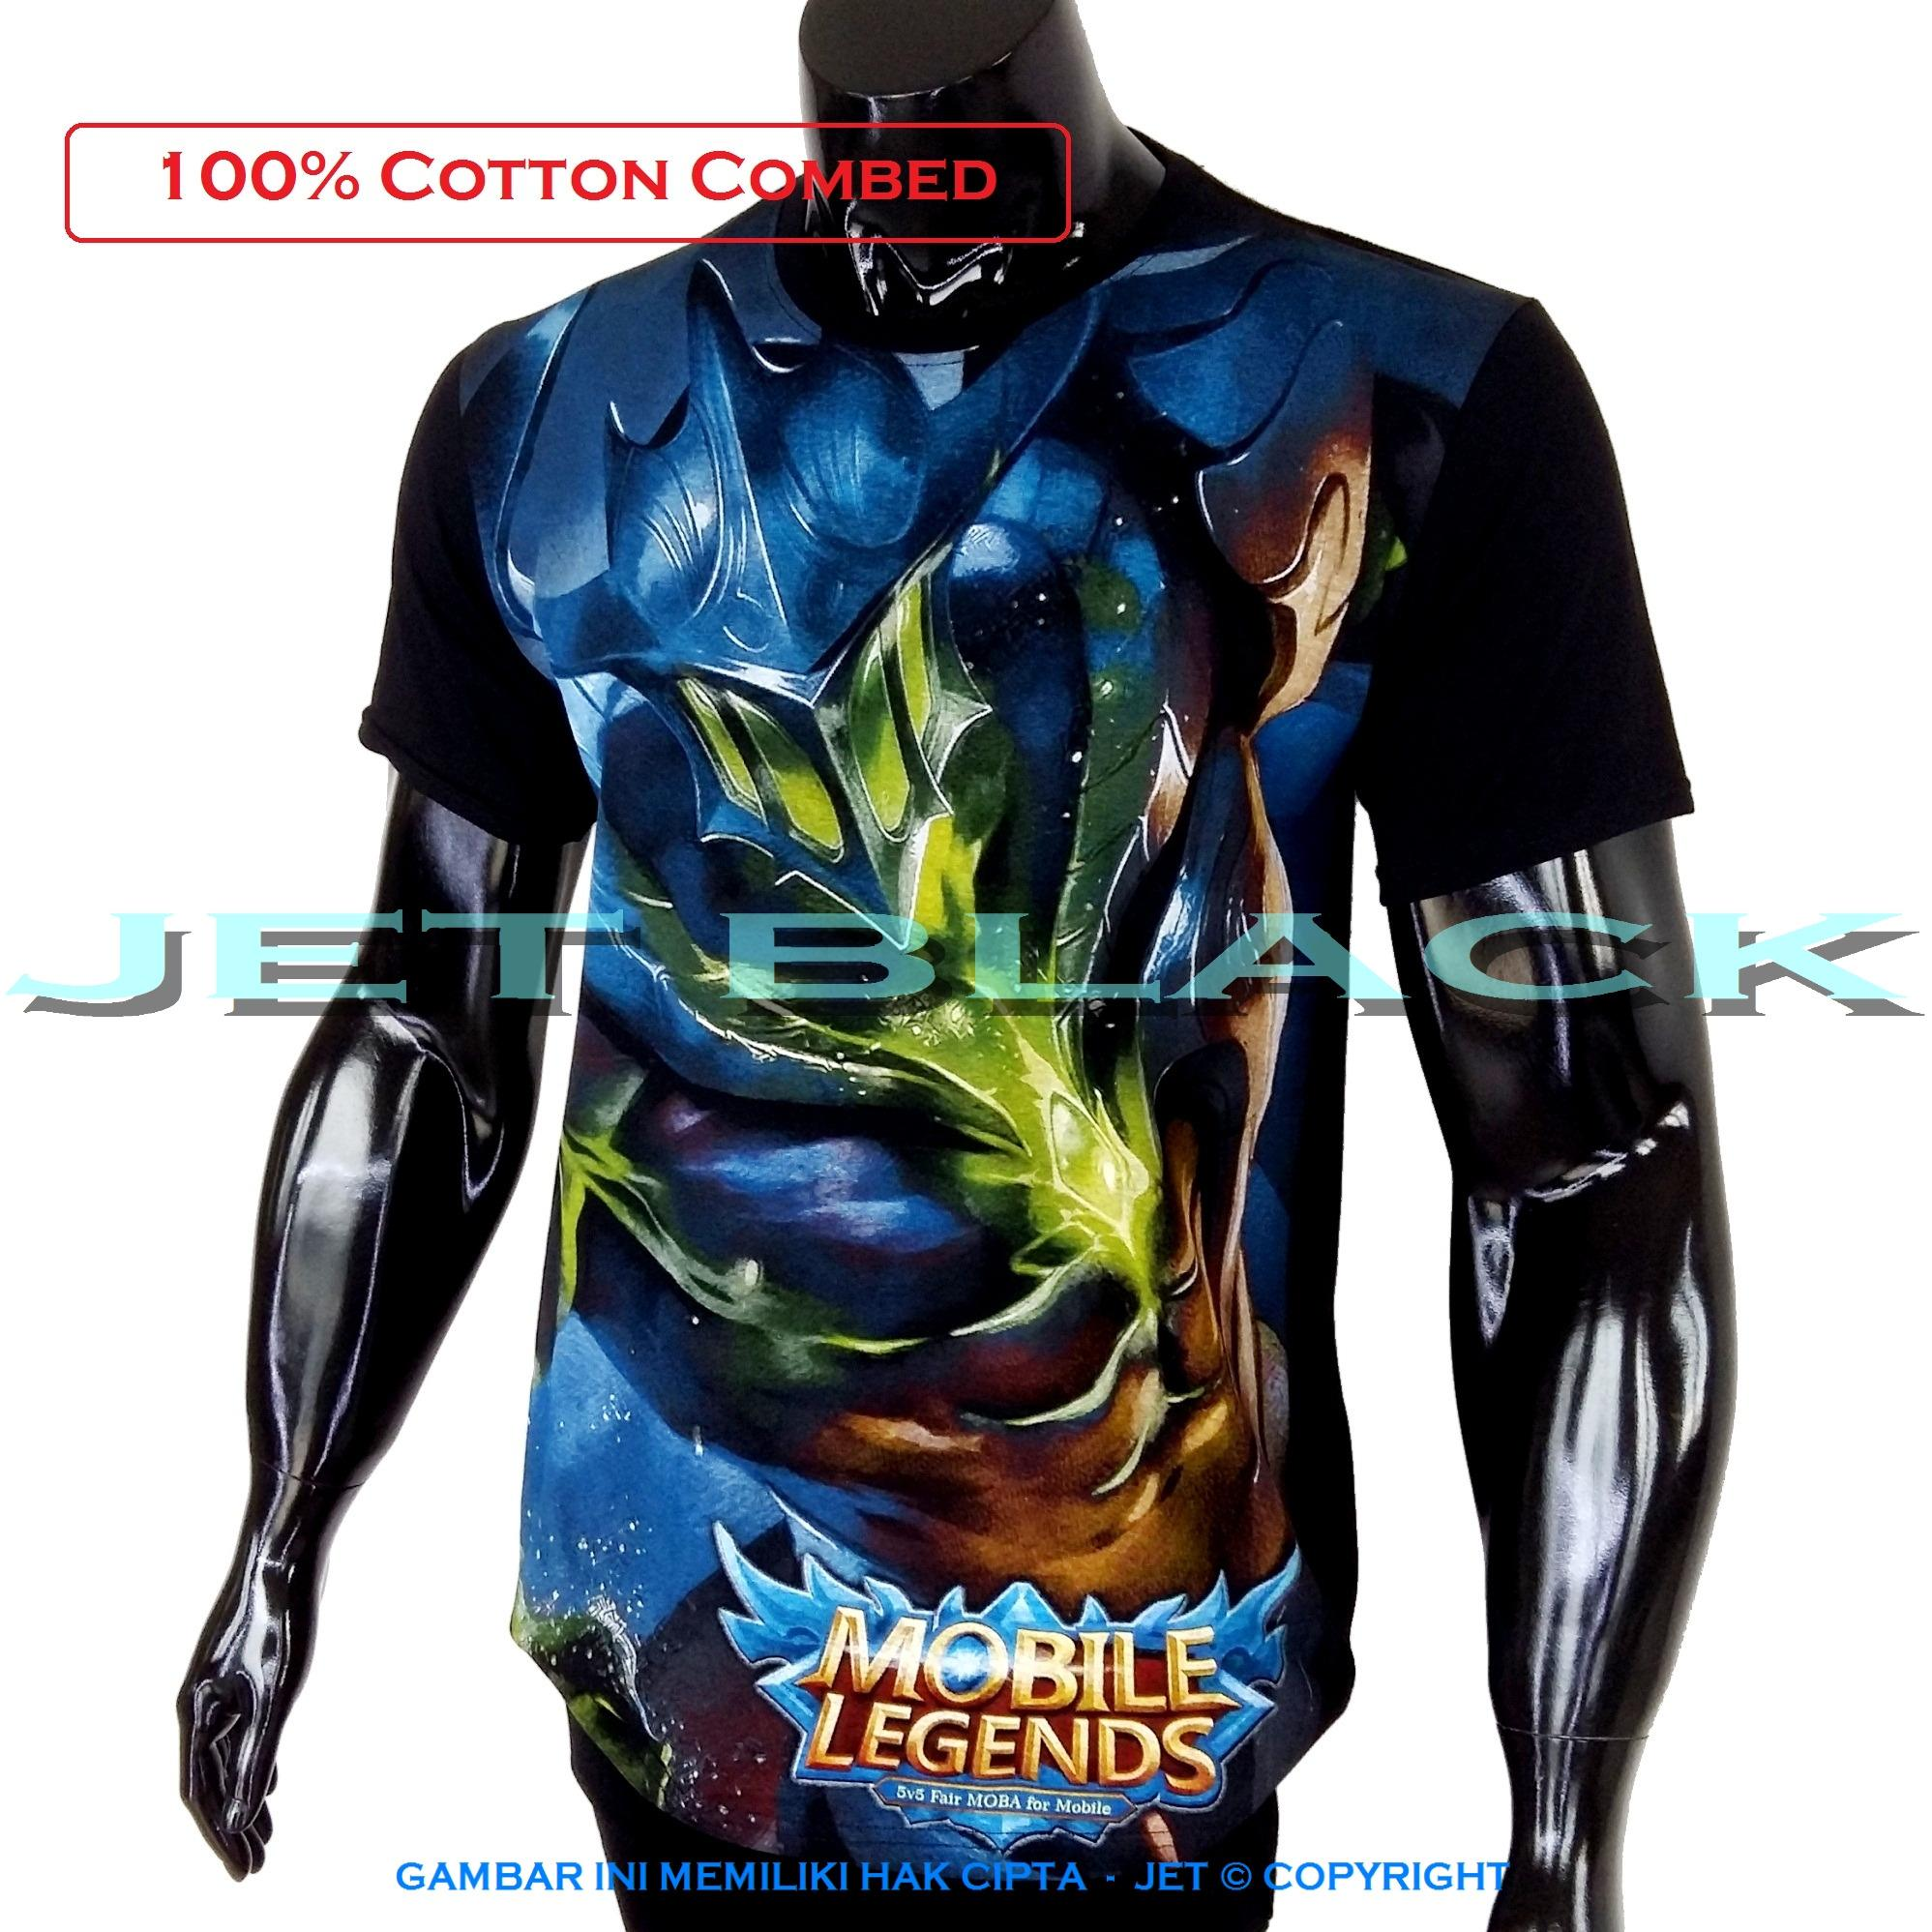 Review Jet Kaos Mobile Legend Argus Distro T Shirt Fashion Soft